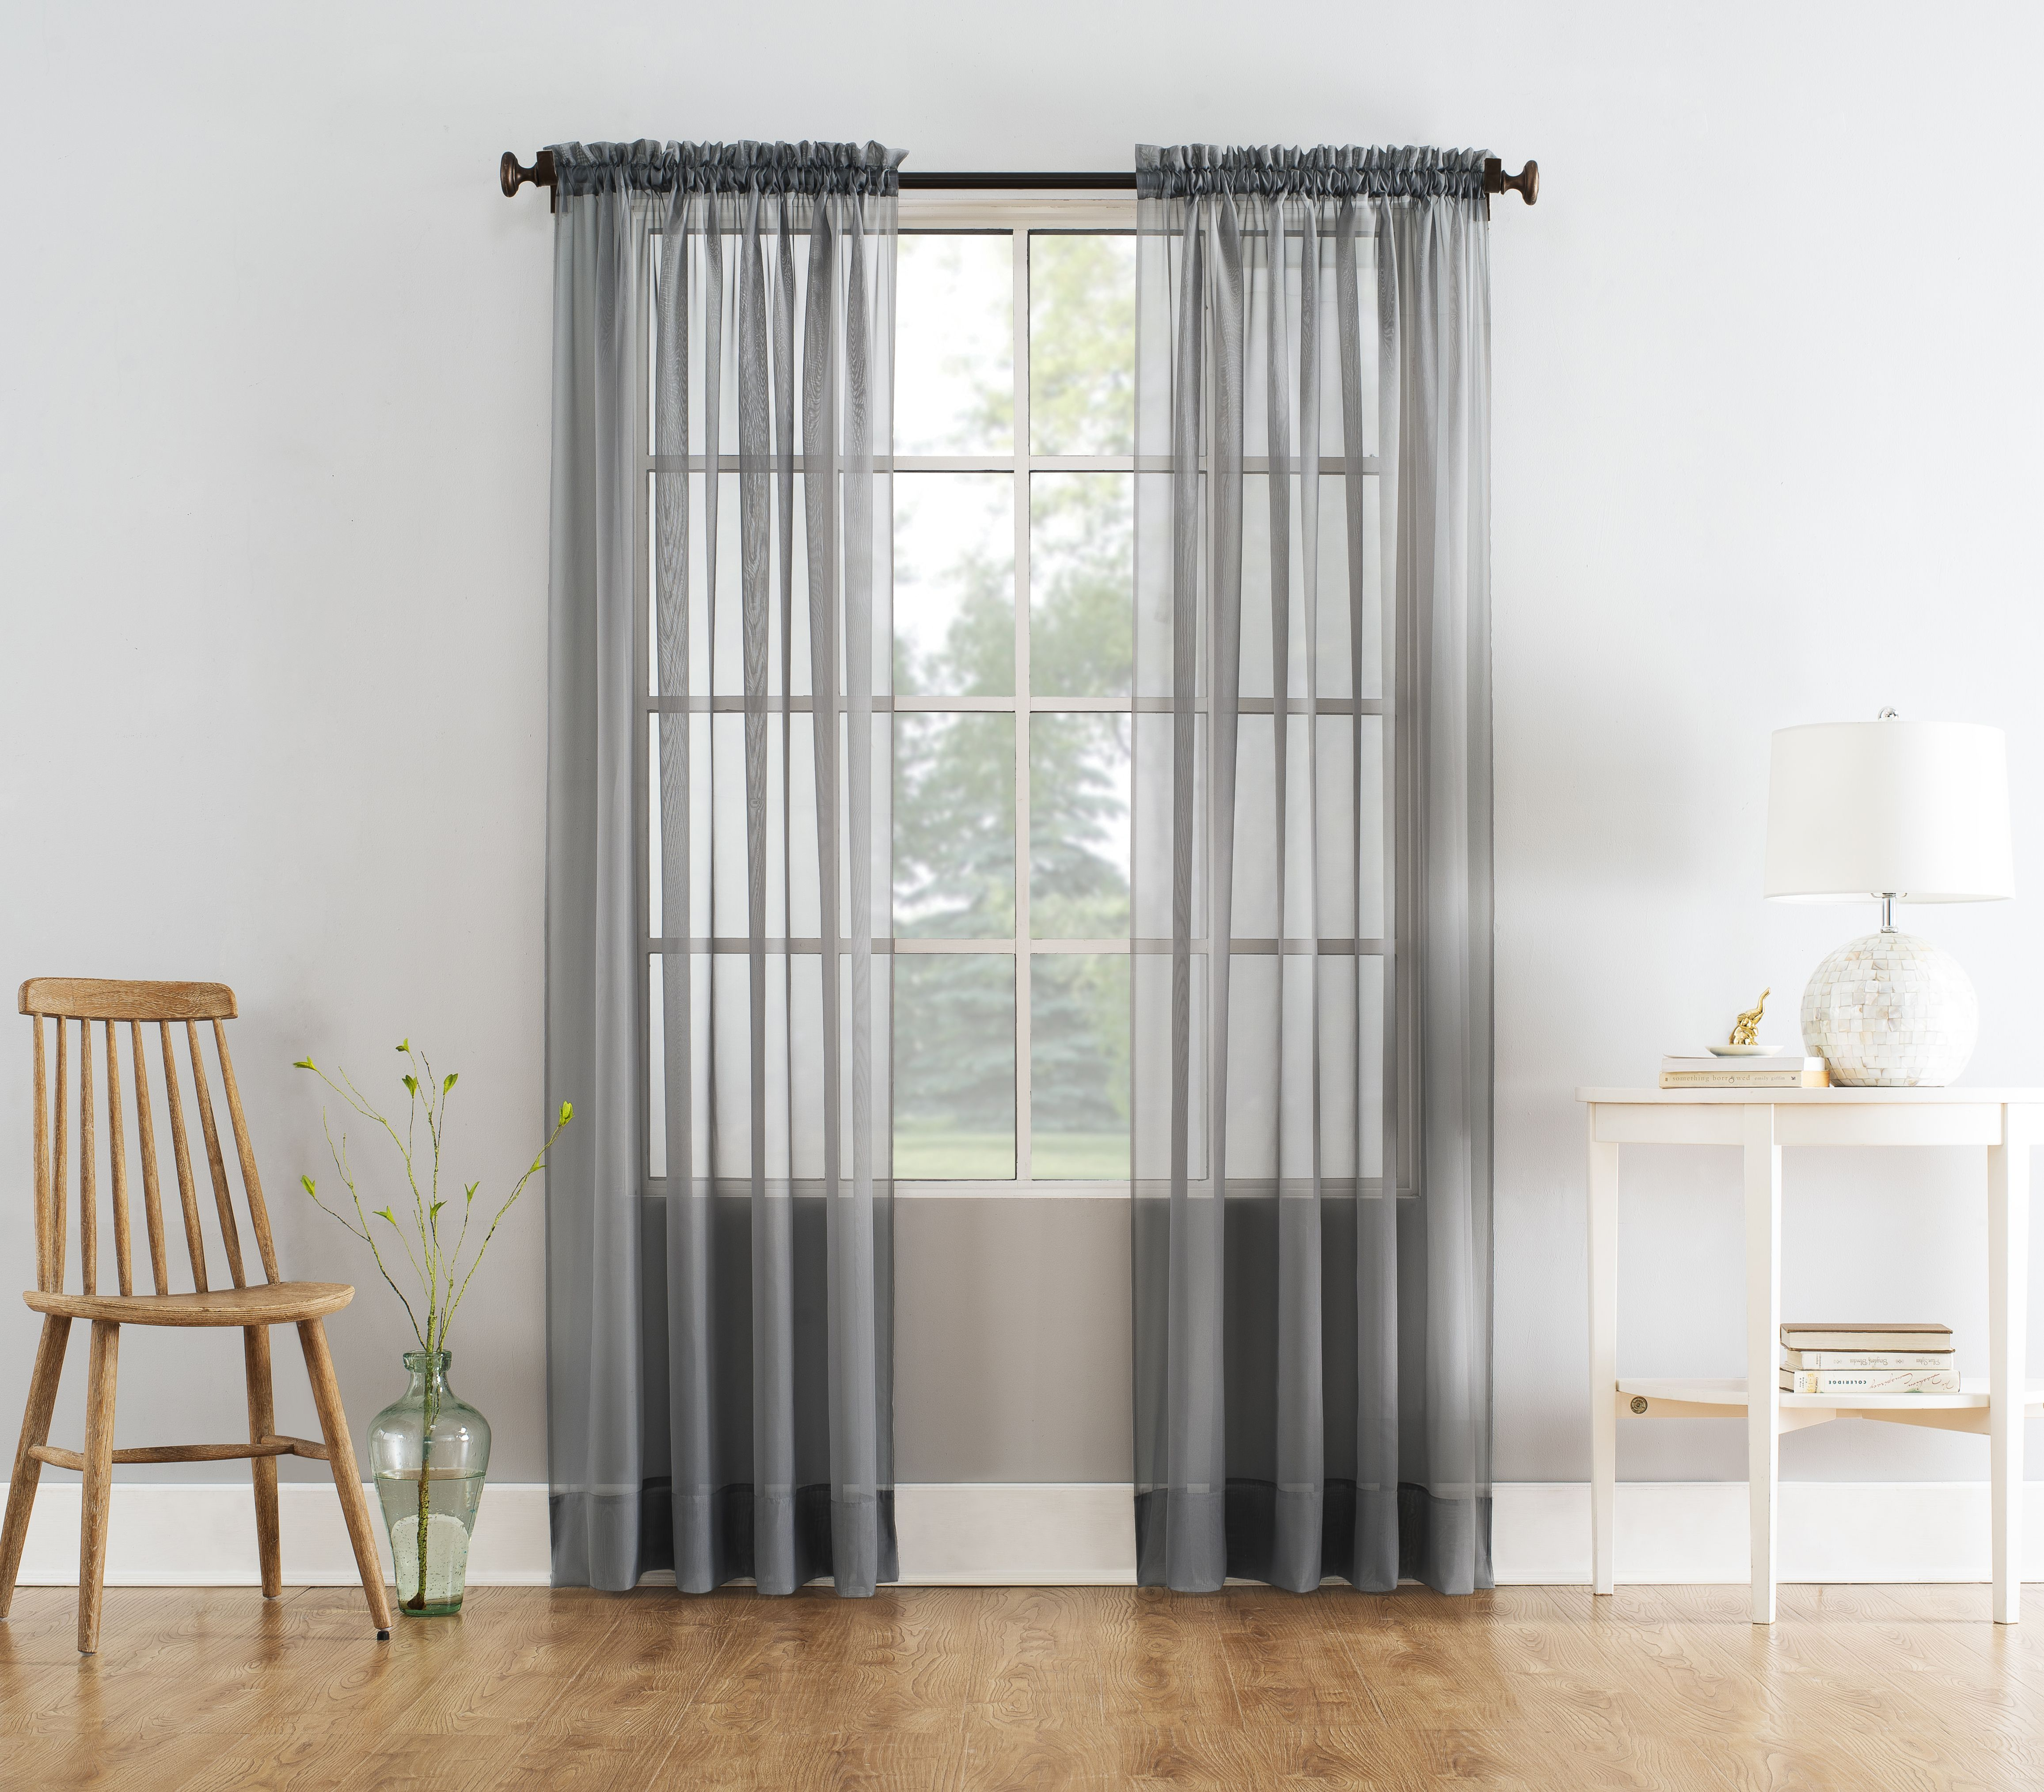 Home Voile Curtains Panel Curtains Sheer Curtain Panels